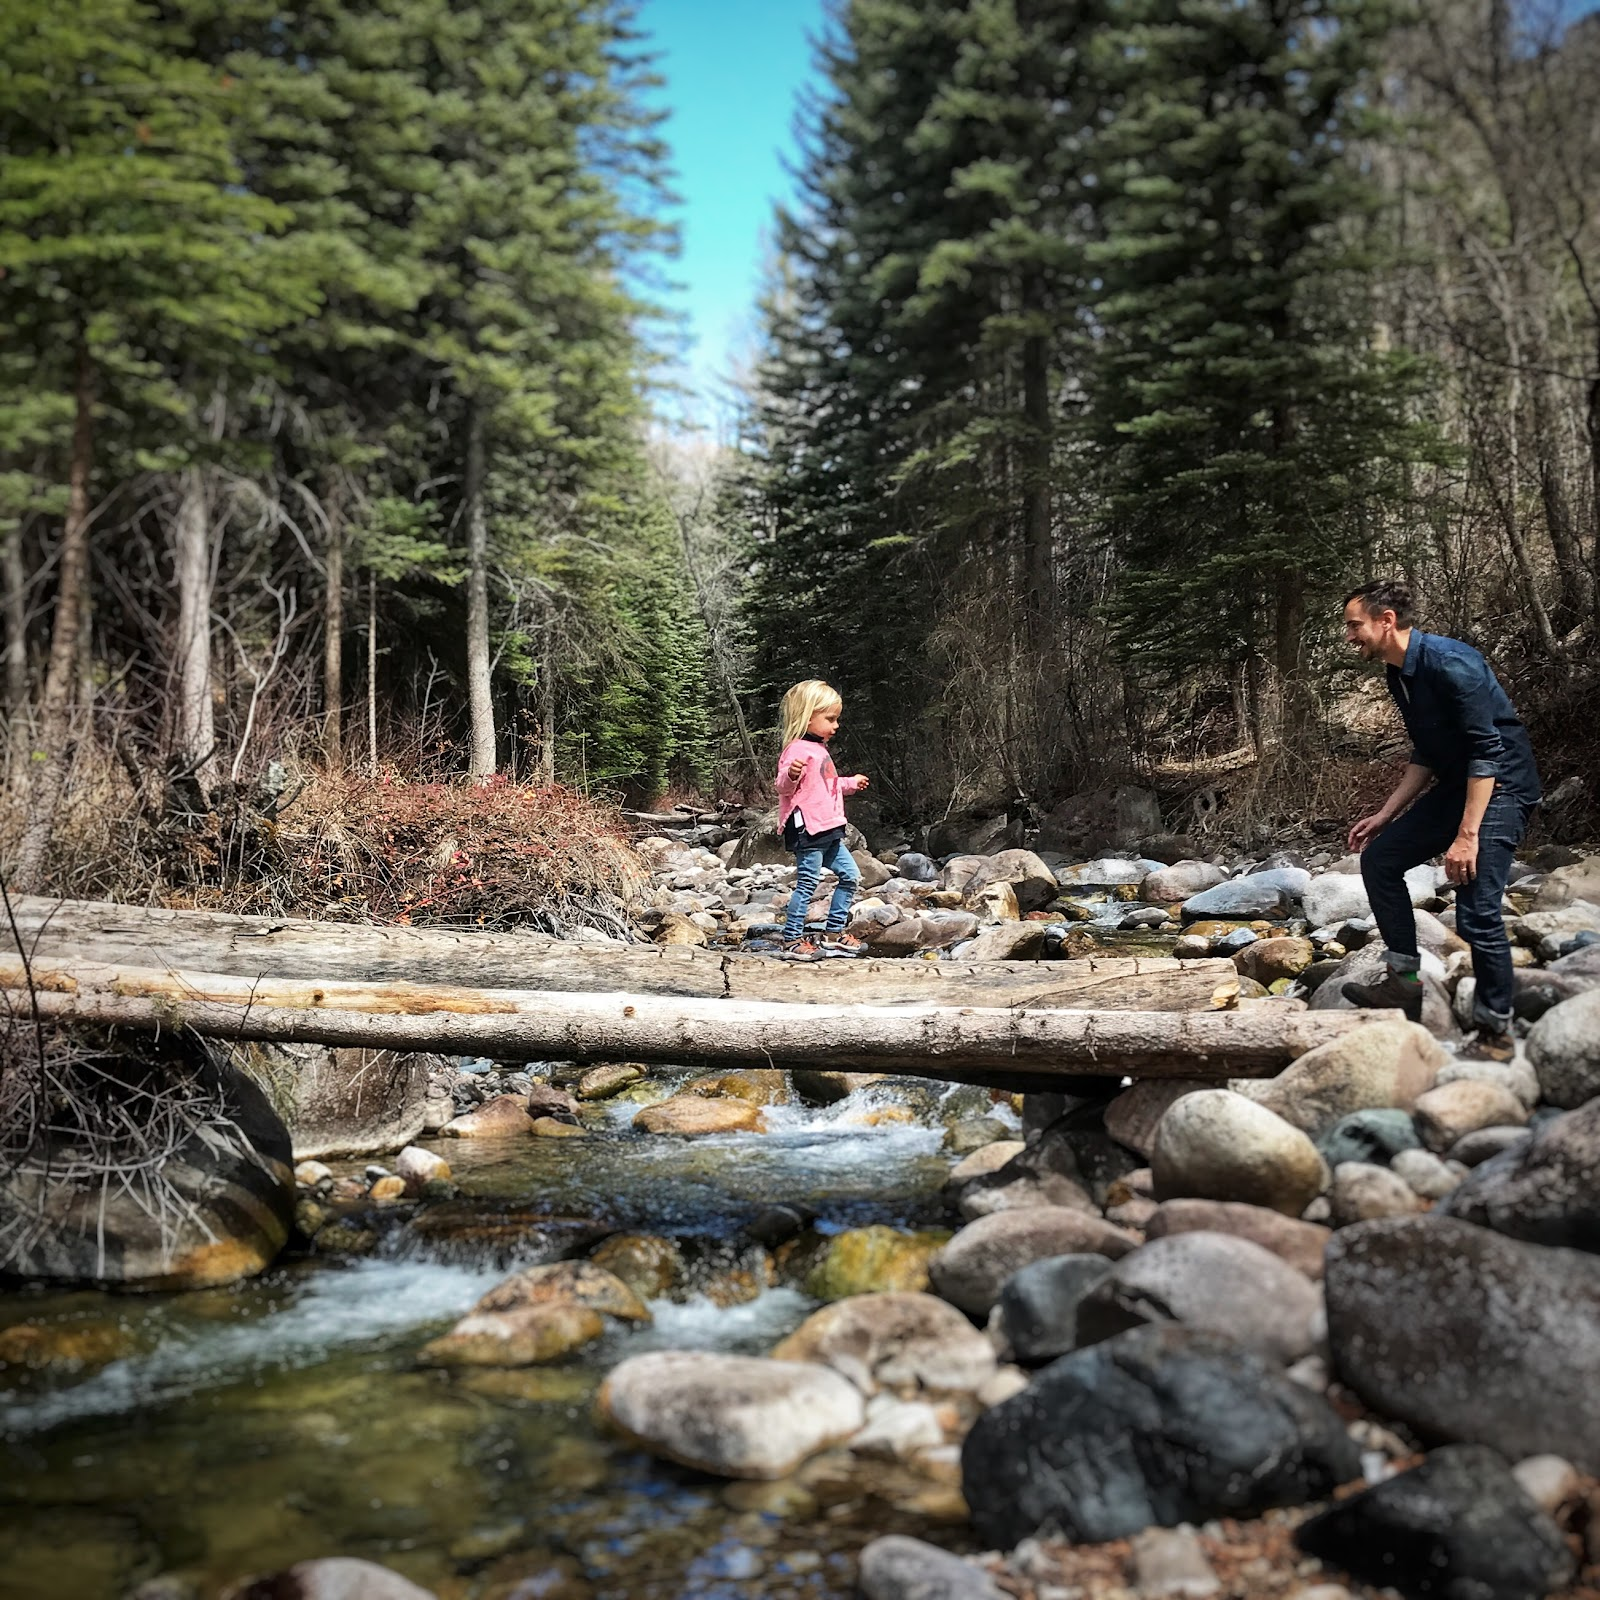 A father and daughter climb over a log in the woods somewhere in the Kootenays